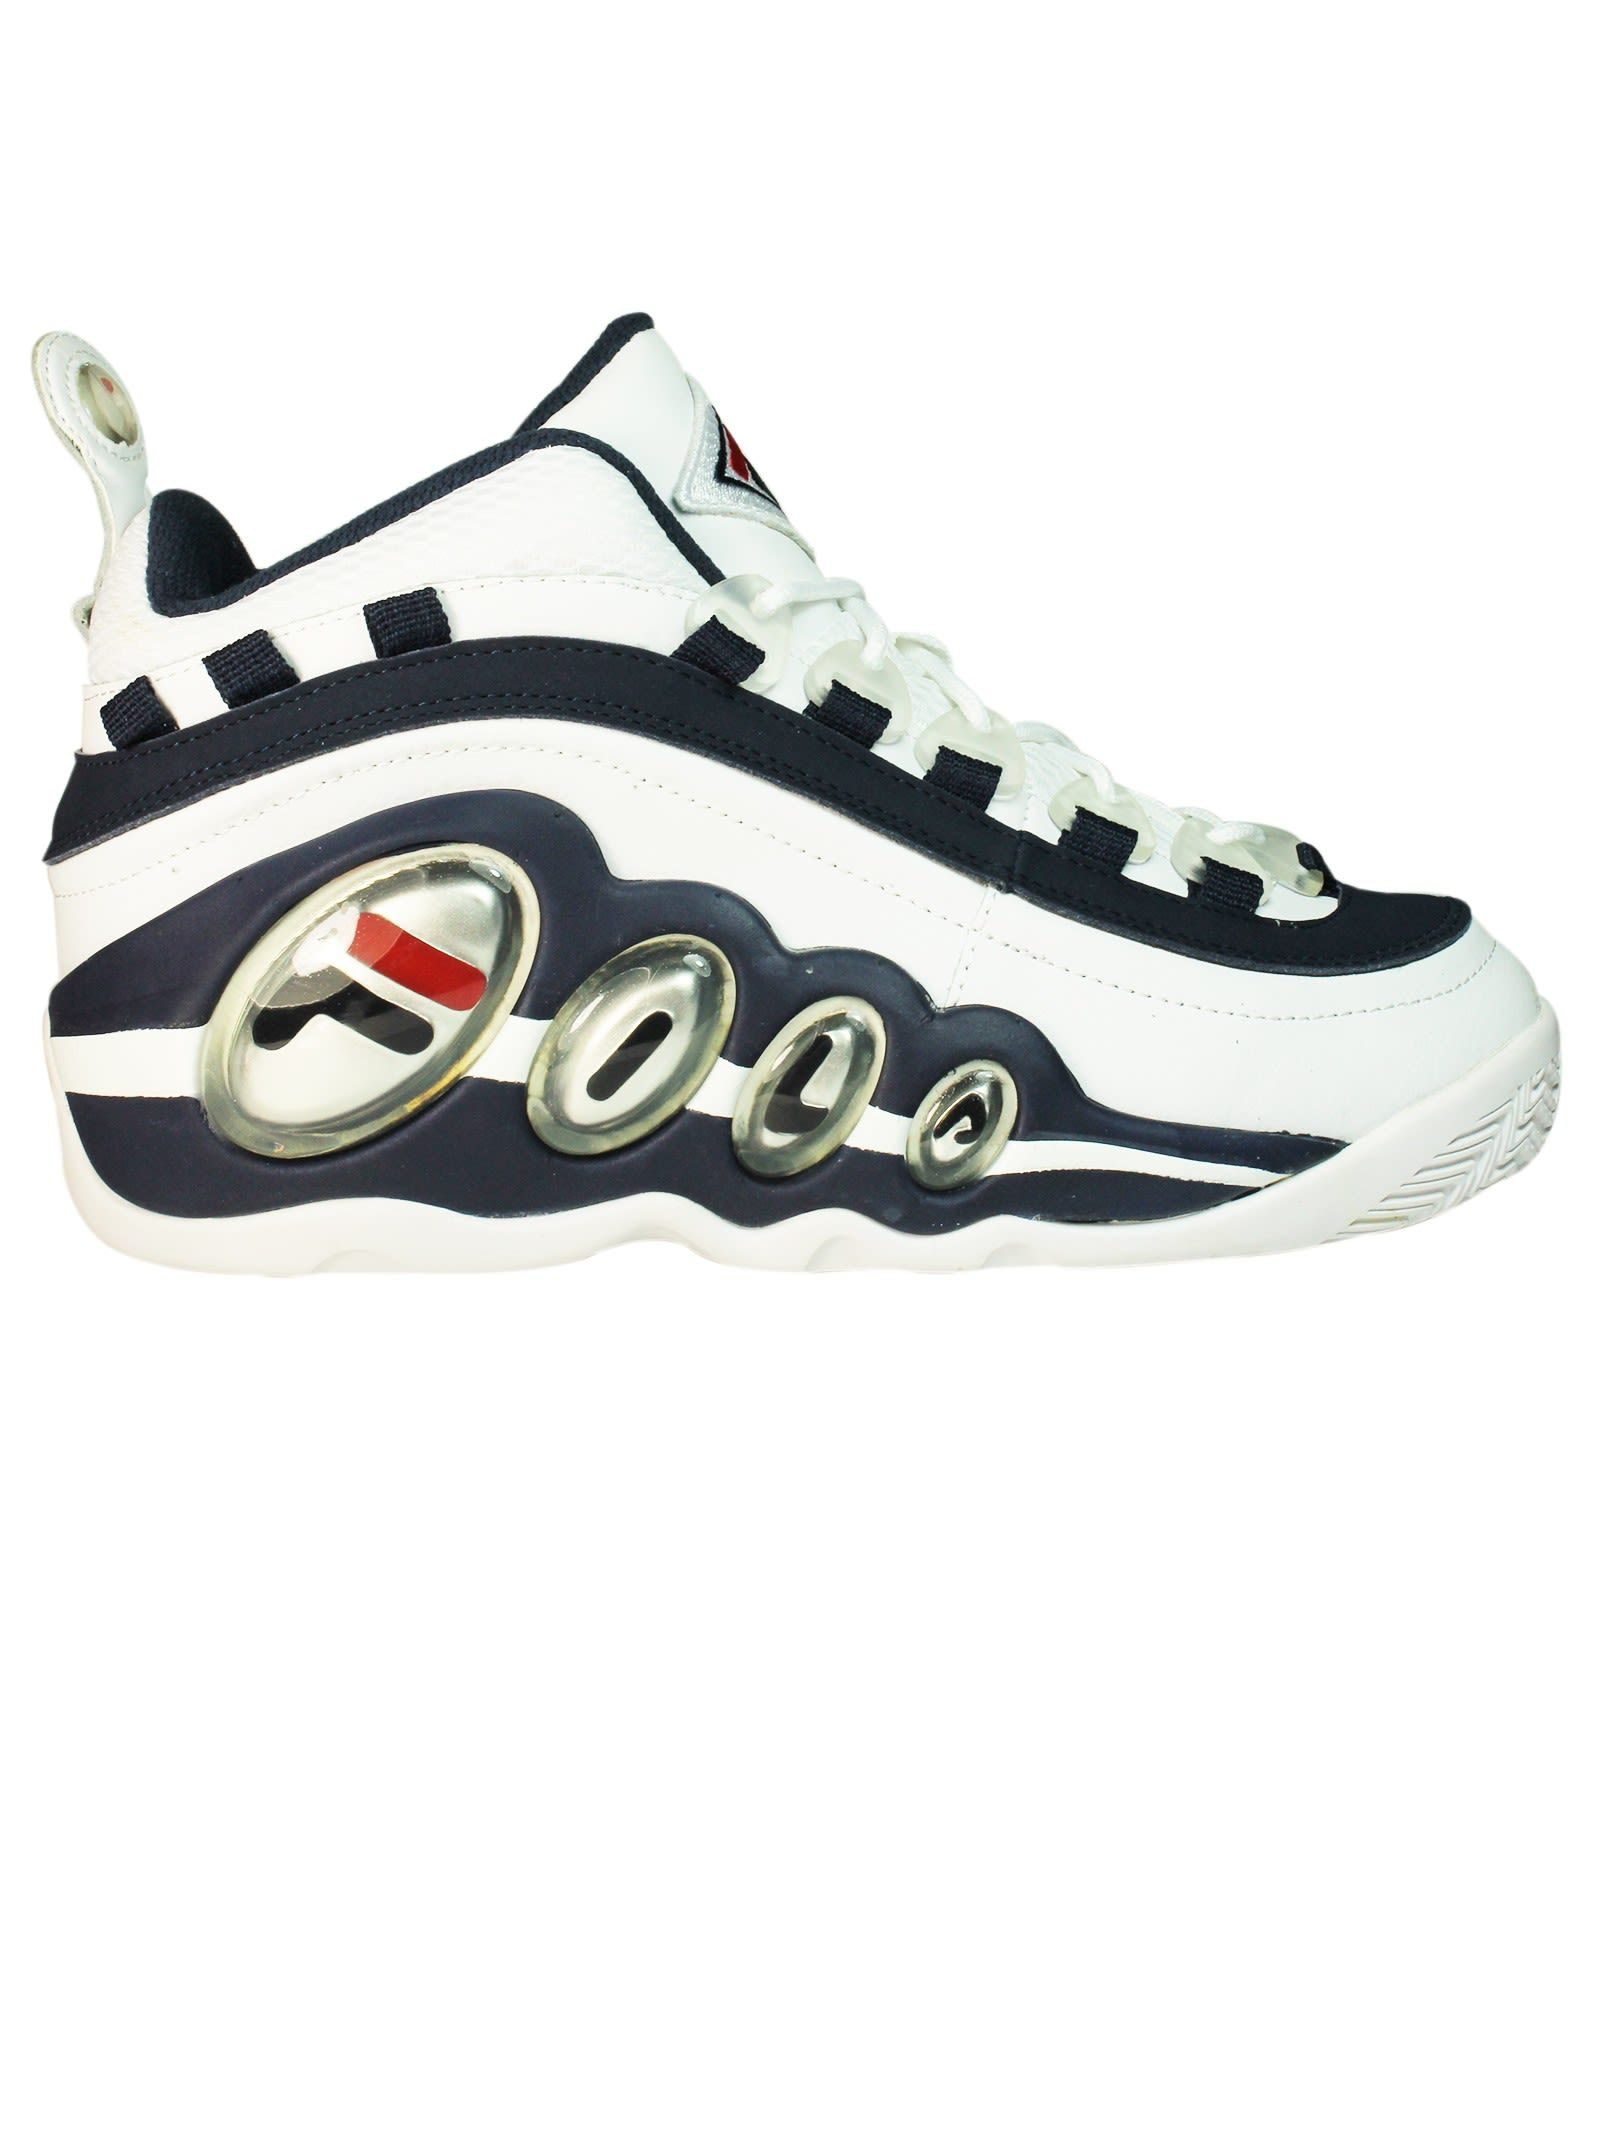 dd3477c8c8e3 FILA WHITE BLUE BUBBLES MID SNEAKERS.  fila  shoes